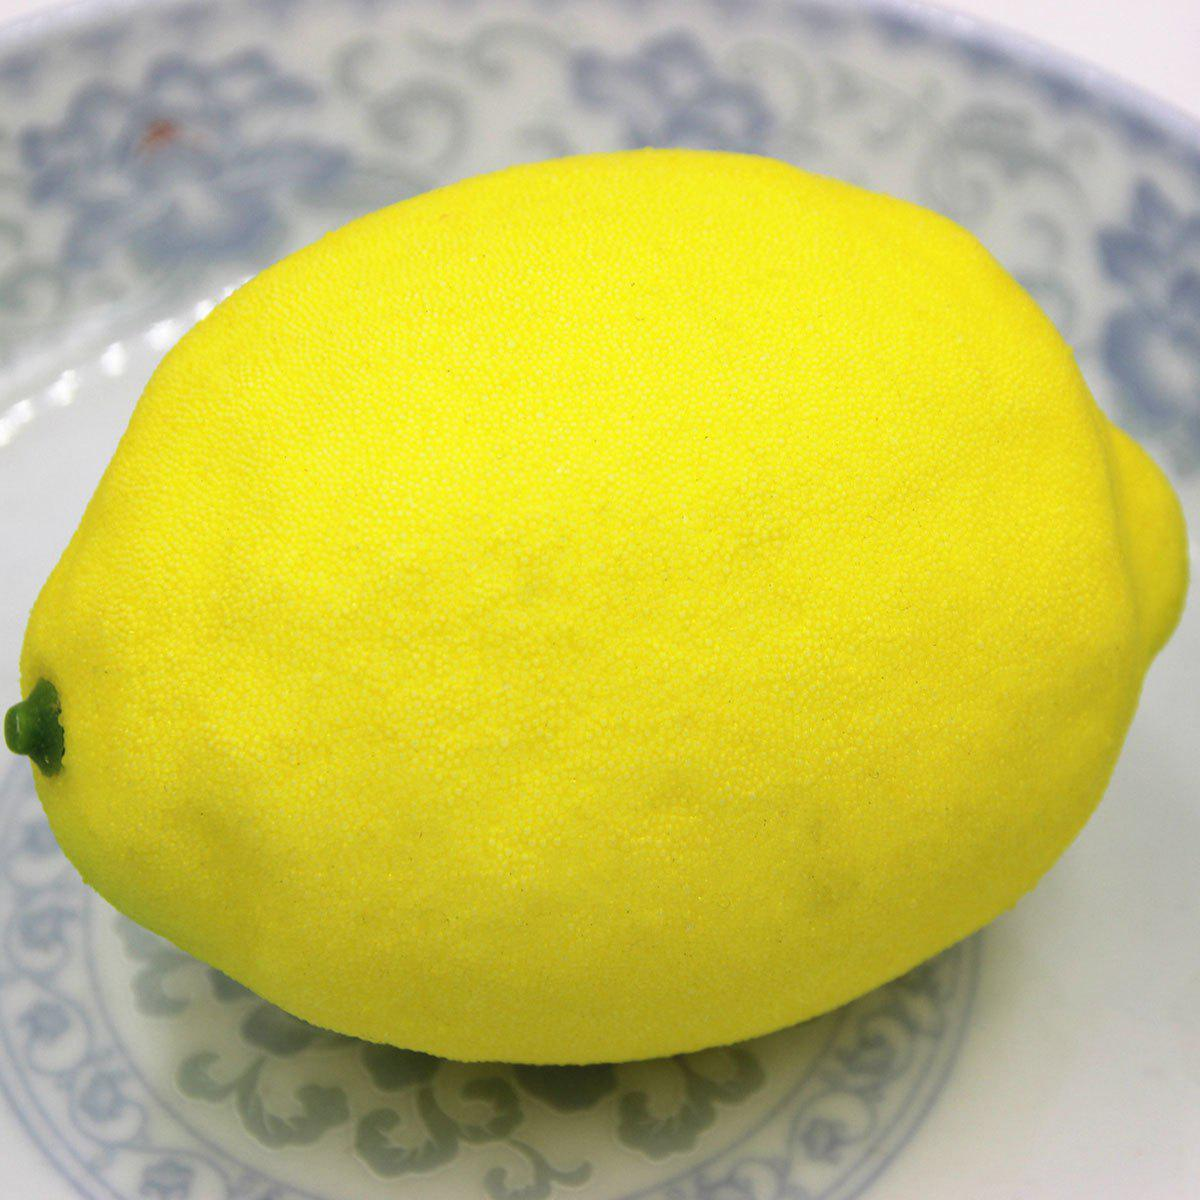 Stress Relief Simulated Lemon Shape Squishy ToyHOME<br><br>Color: YELLOW; Products Type: Squishy Toy; Theme: Funny; Materials: Foam; Features: Creative Toy; Shape/Pattern: Fruit;